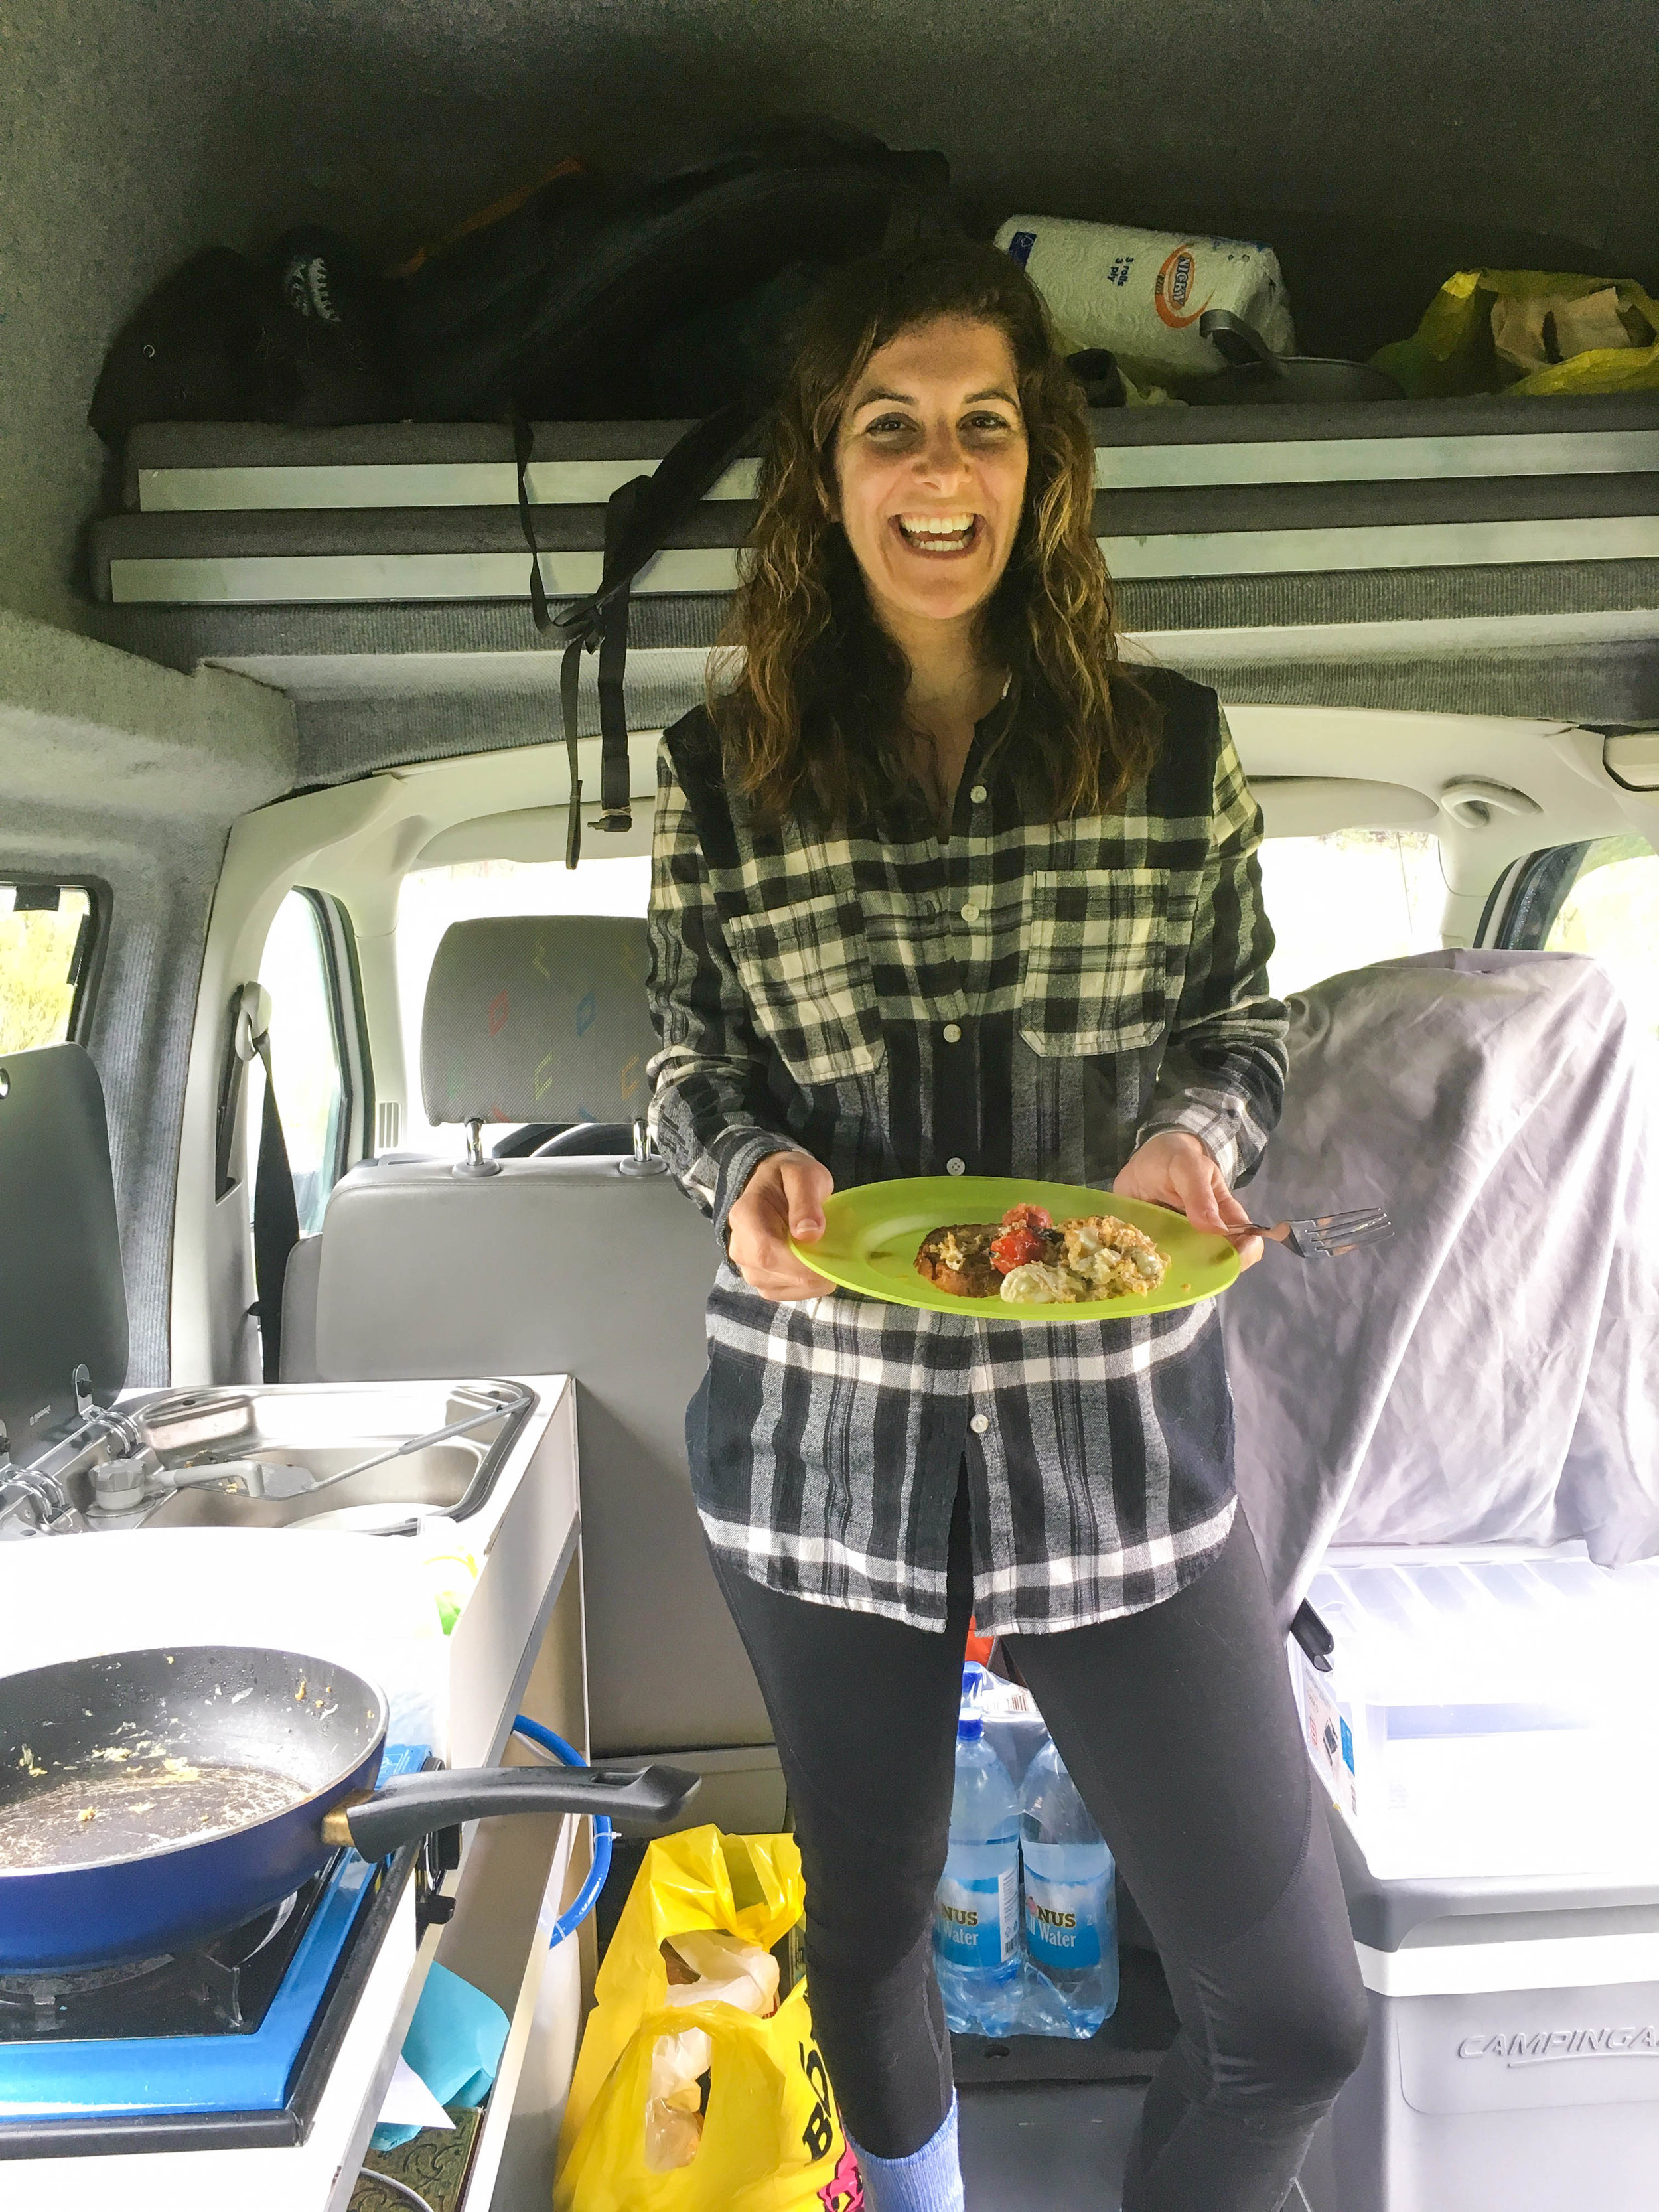 Camper van breakfast! Scrambled eggs and tomatoes with toast!